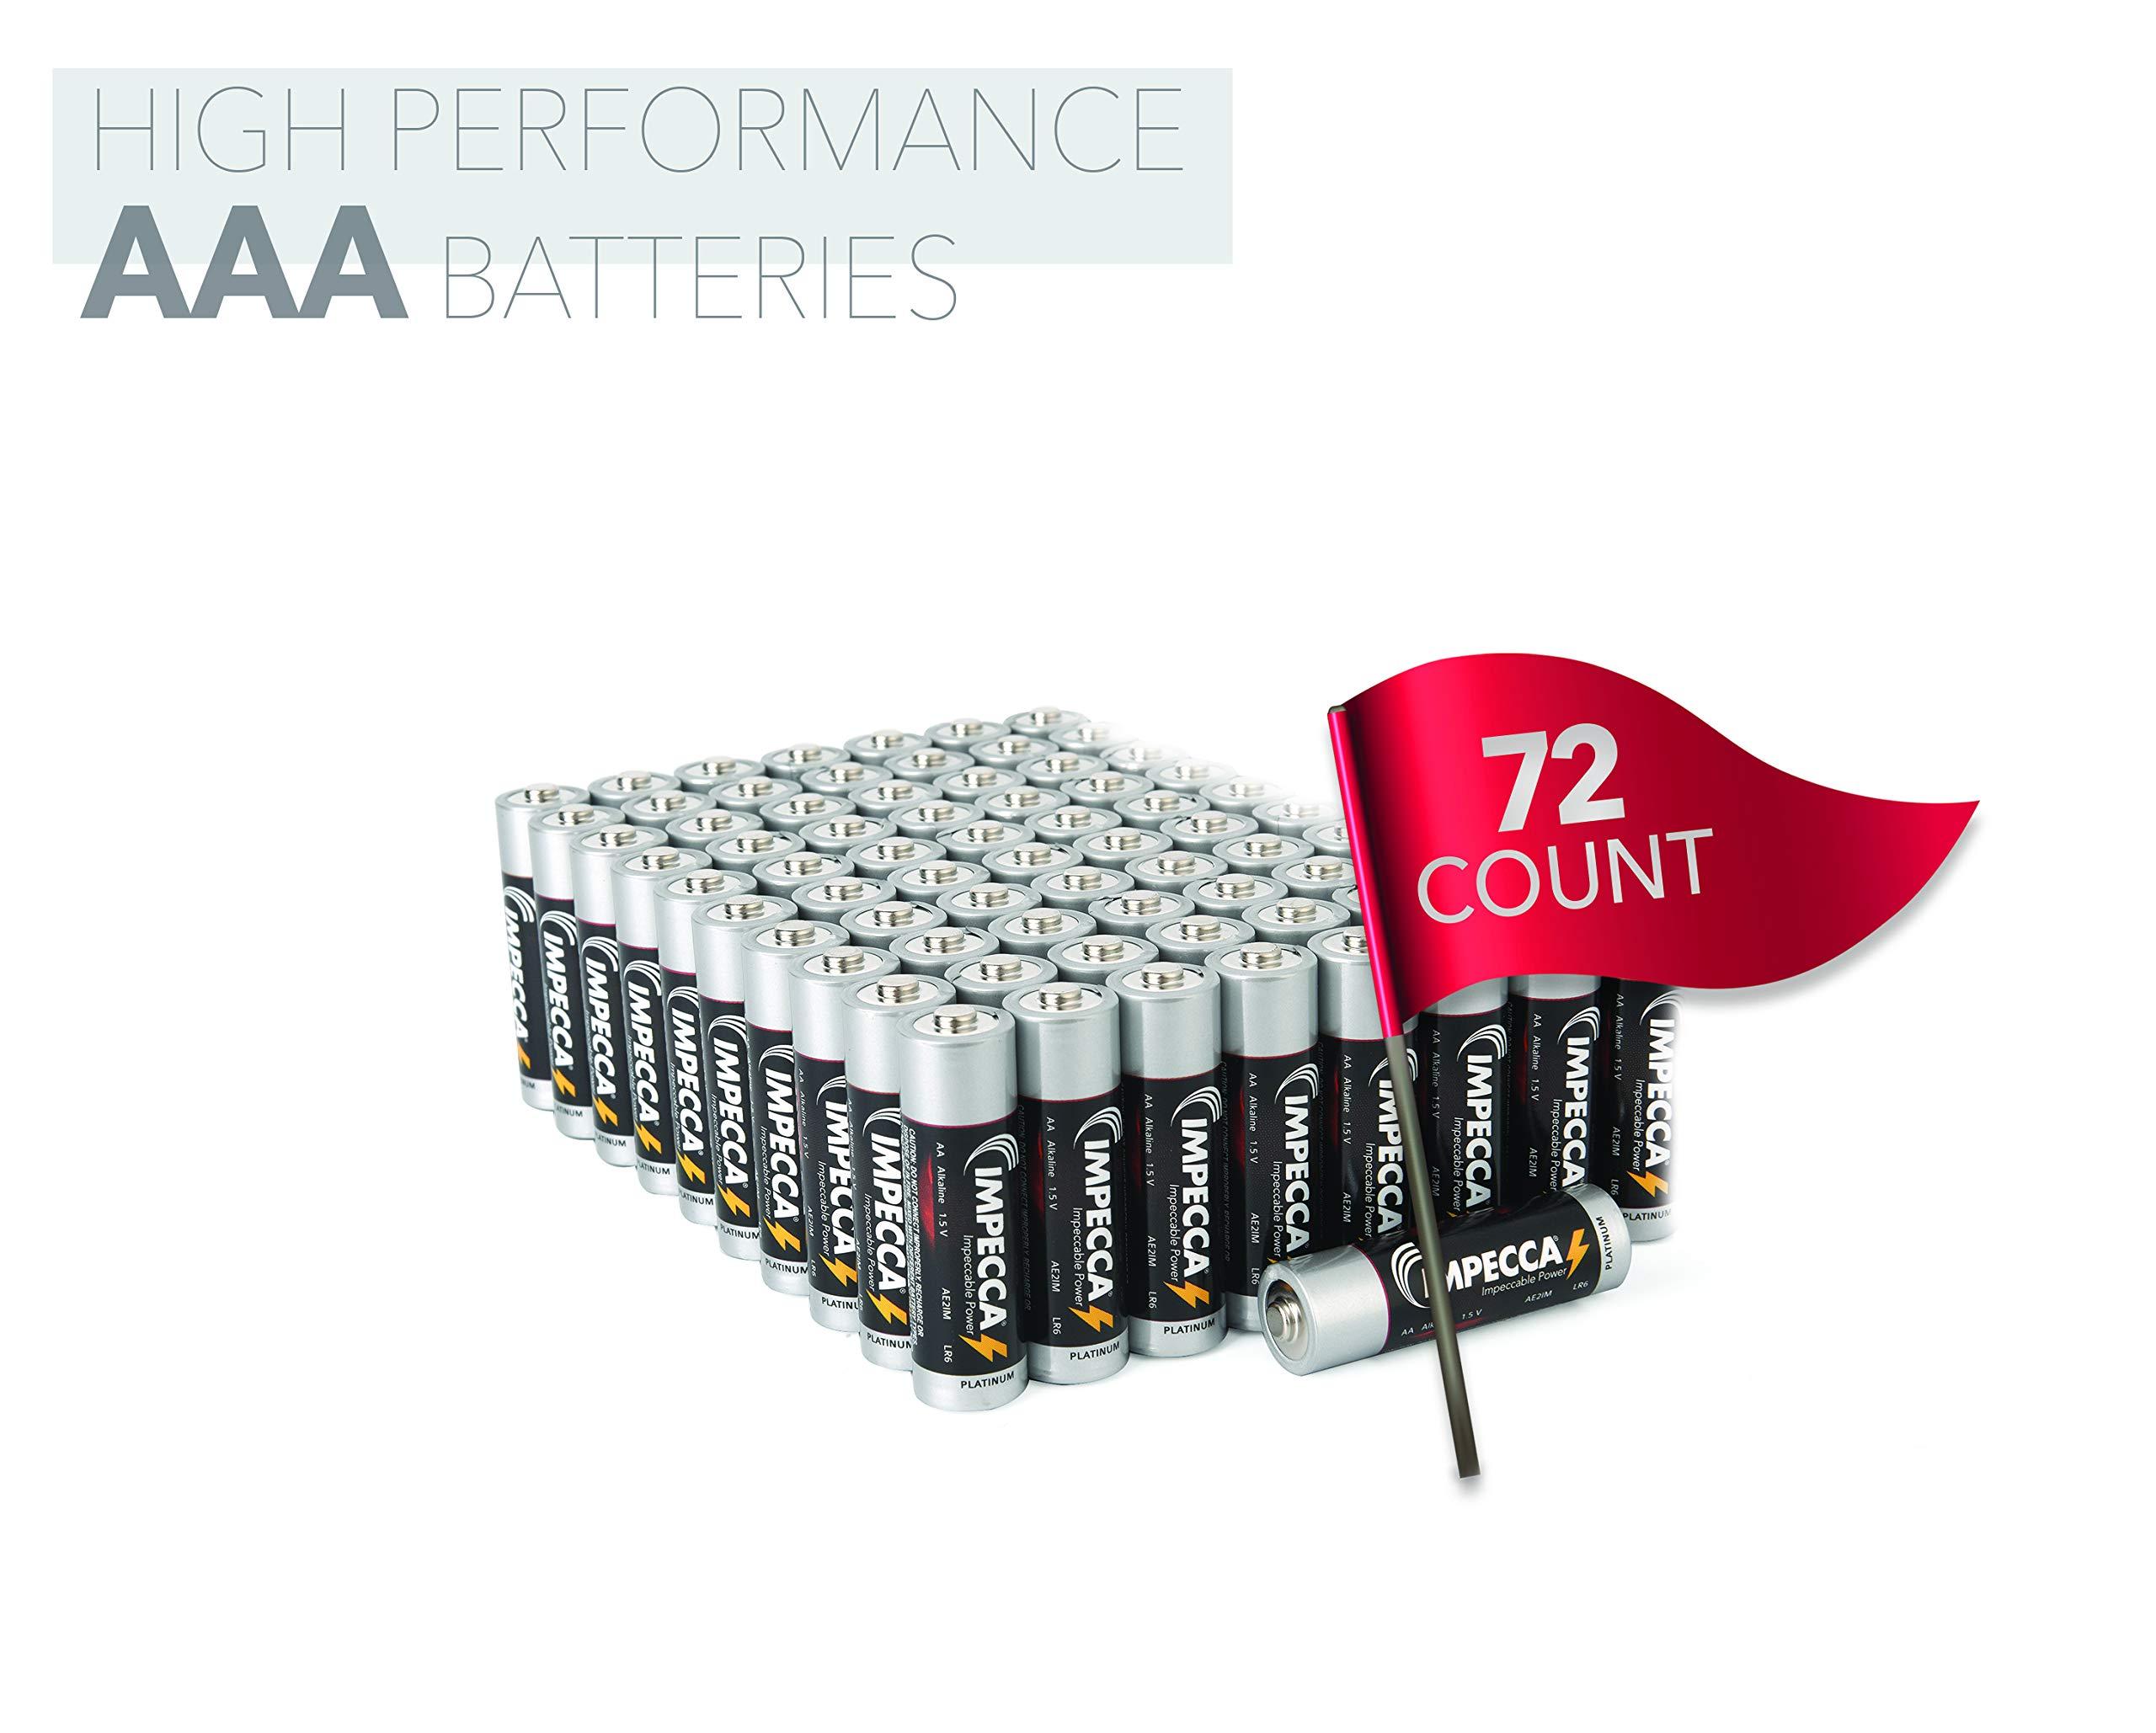 IMPECCA AAA Batteries (72 Pack) High Performance 1.5 Volt, All Purpose AAA Alkaline Battery, Non Rechargeable, LR3 72-Count